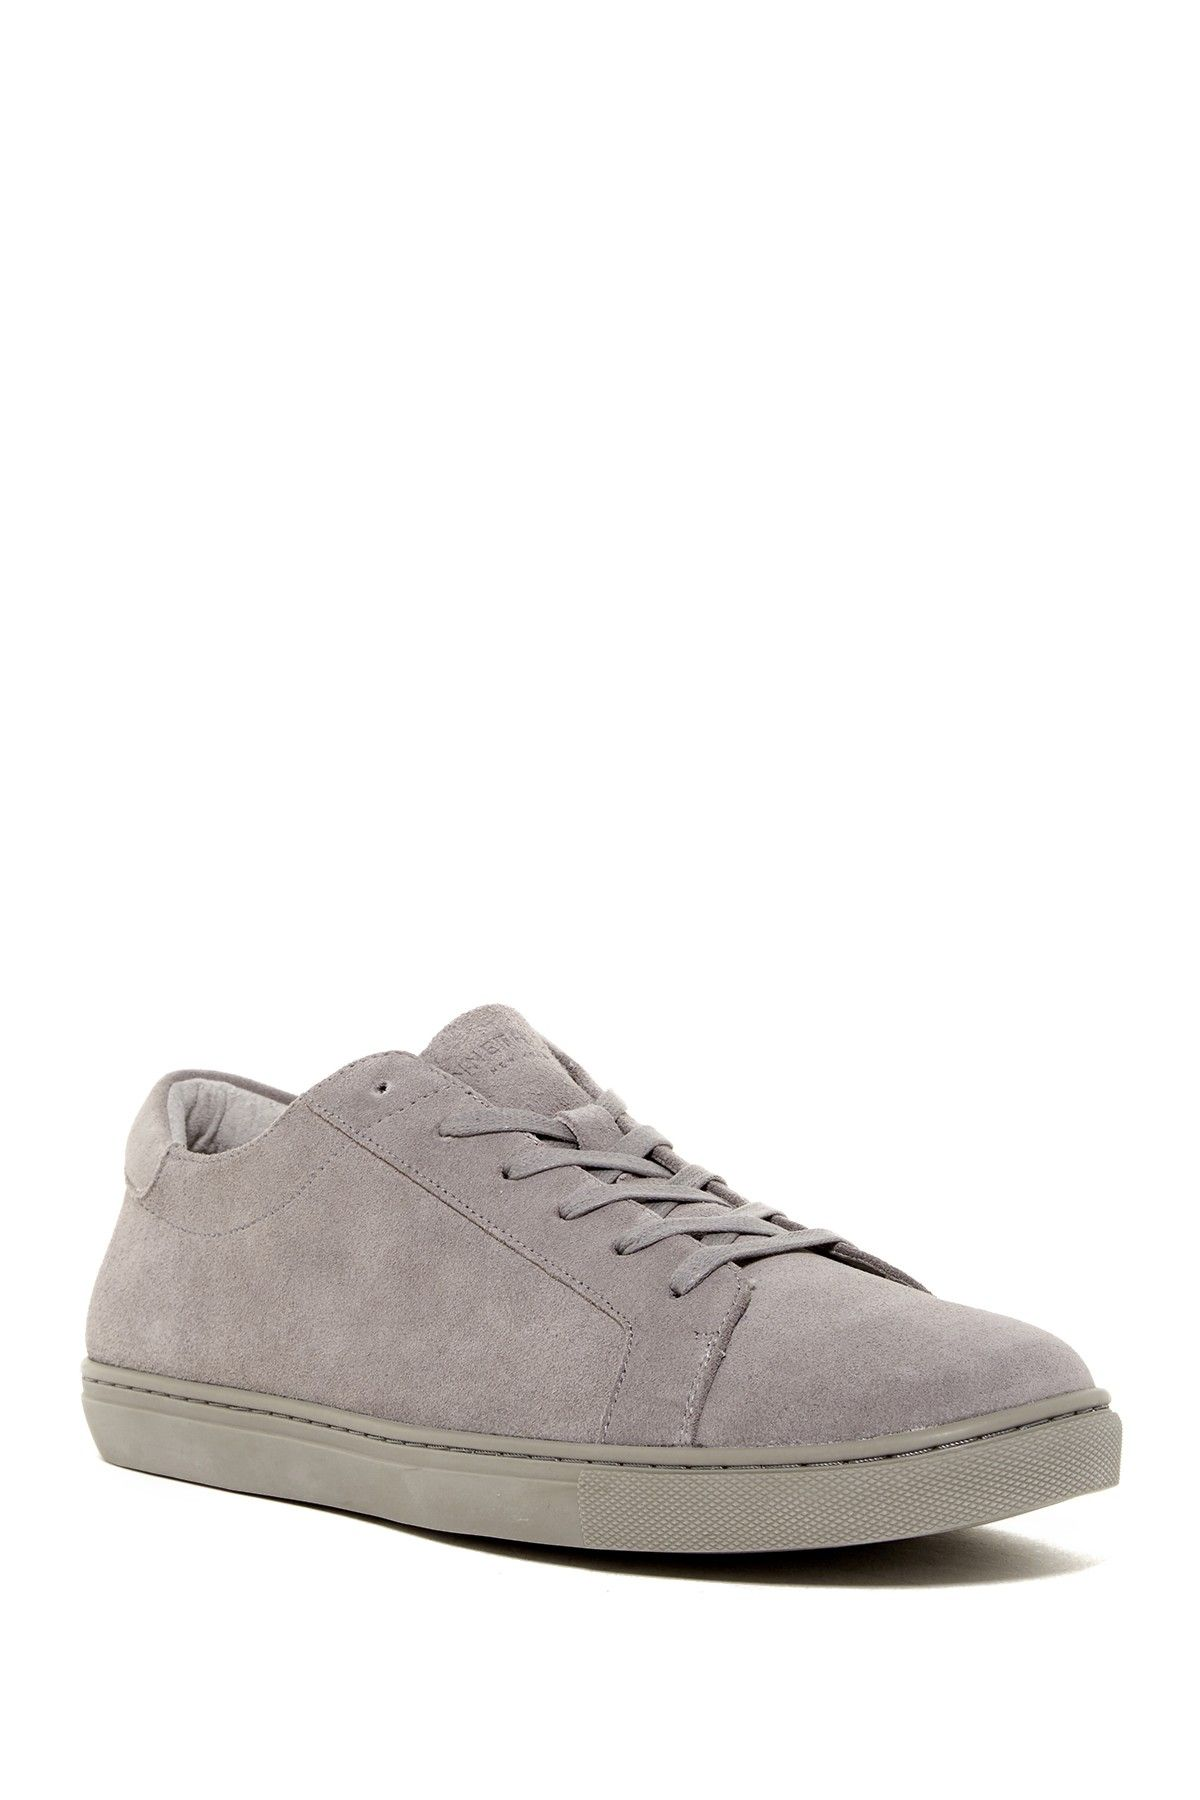 b7be852457a Design 112075 Suede Sneaker Suede Sneakers